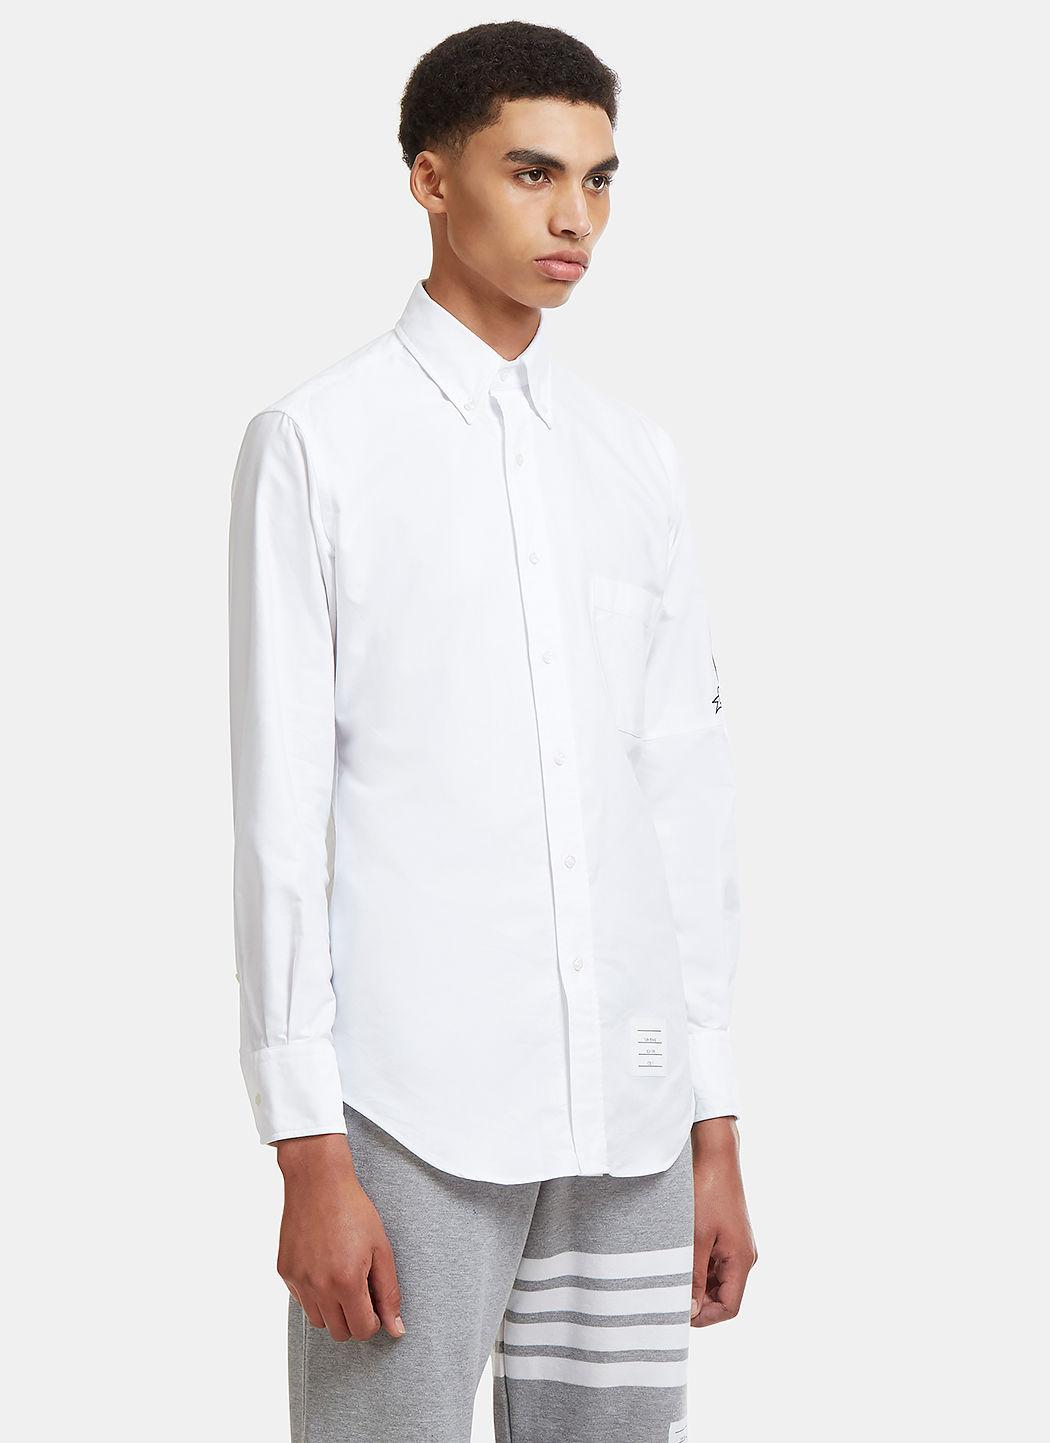 Thom Browne Armband Patch Oxford Shirt In White